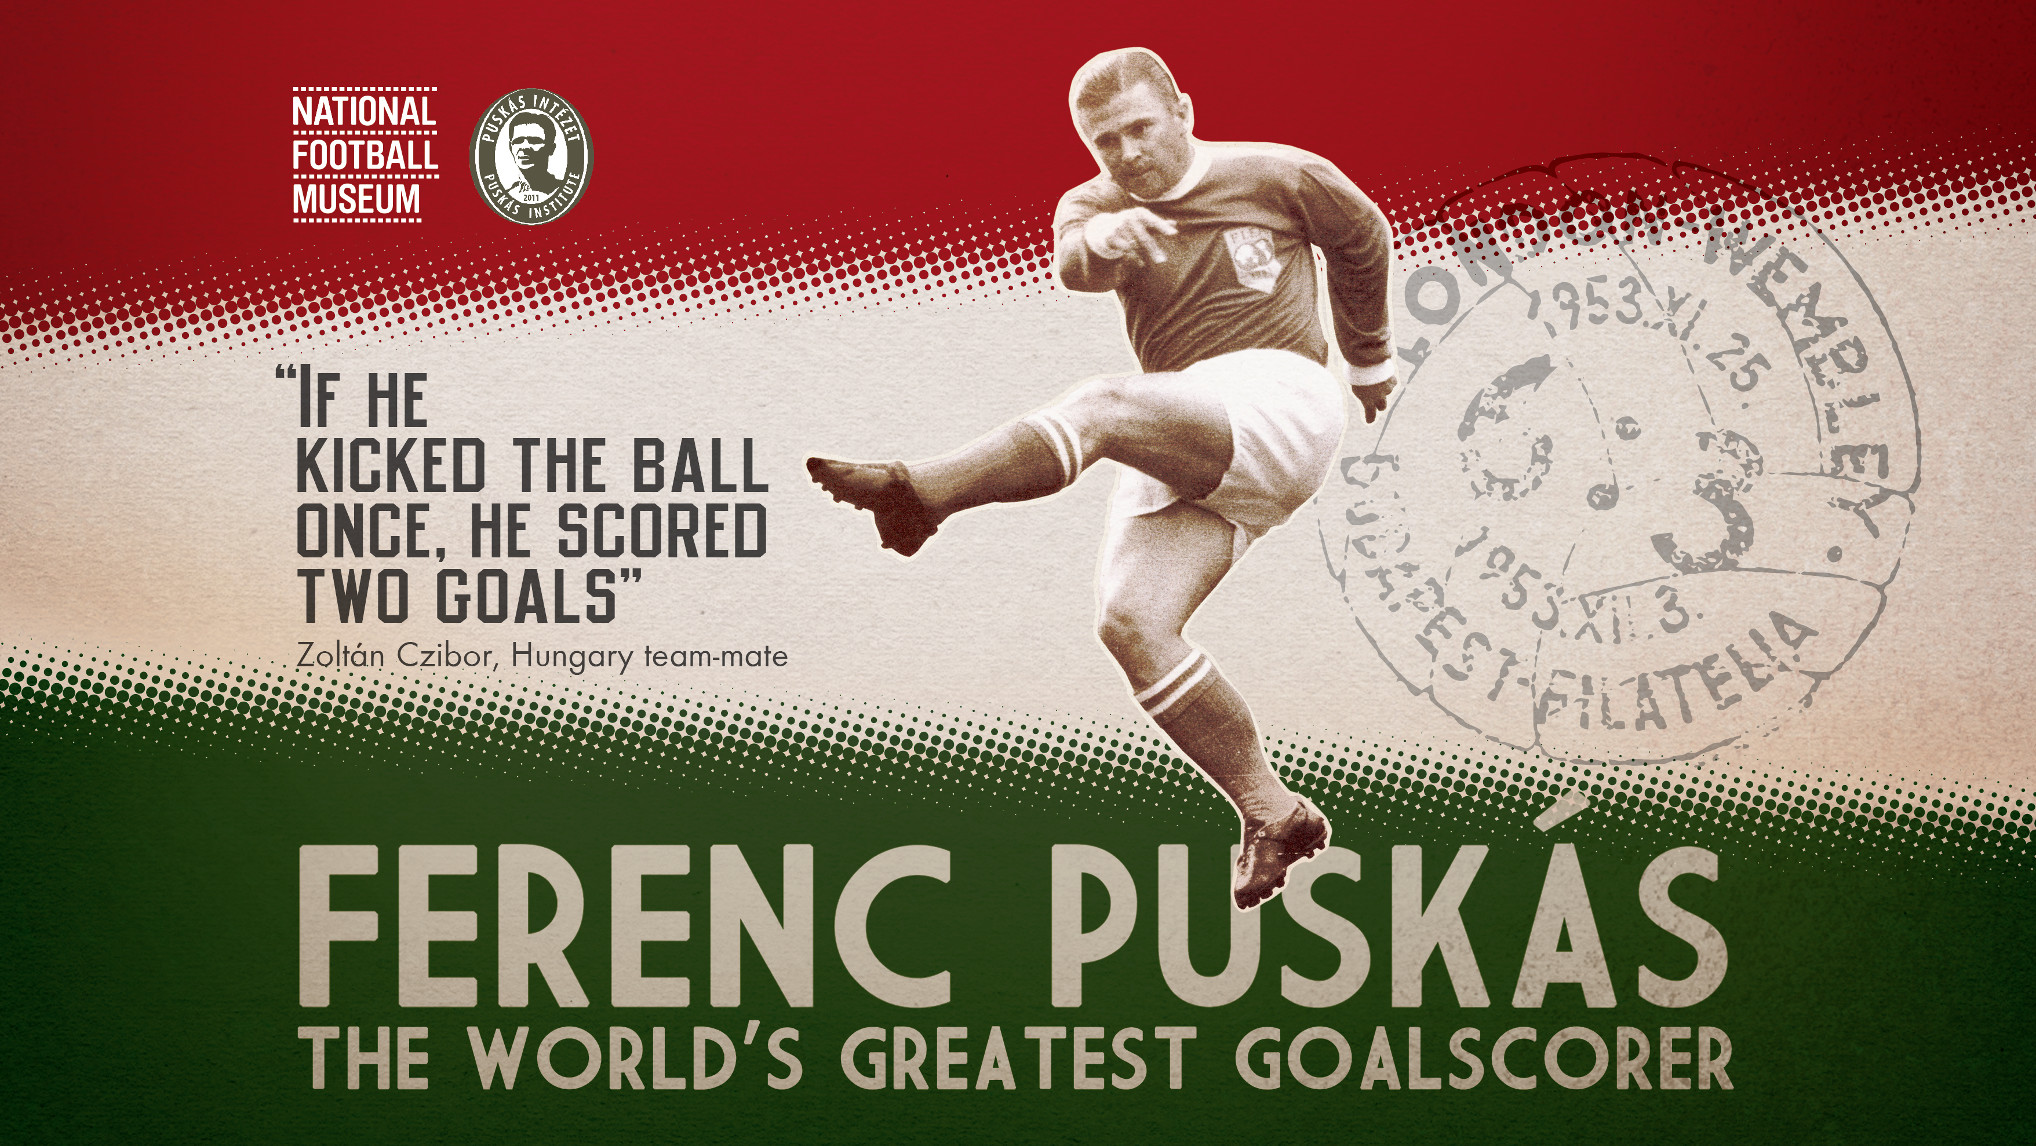 Ferenc Puskás: The World's Greatest Goalscorer